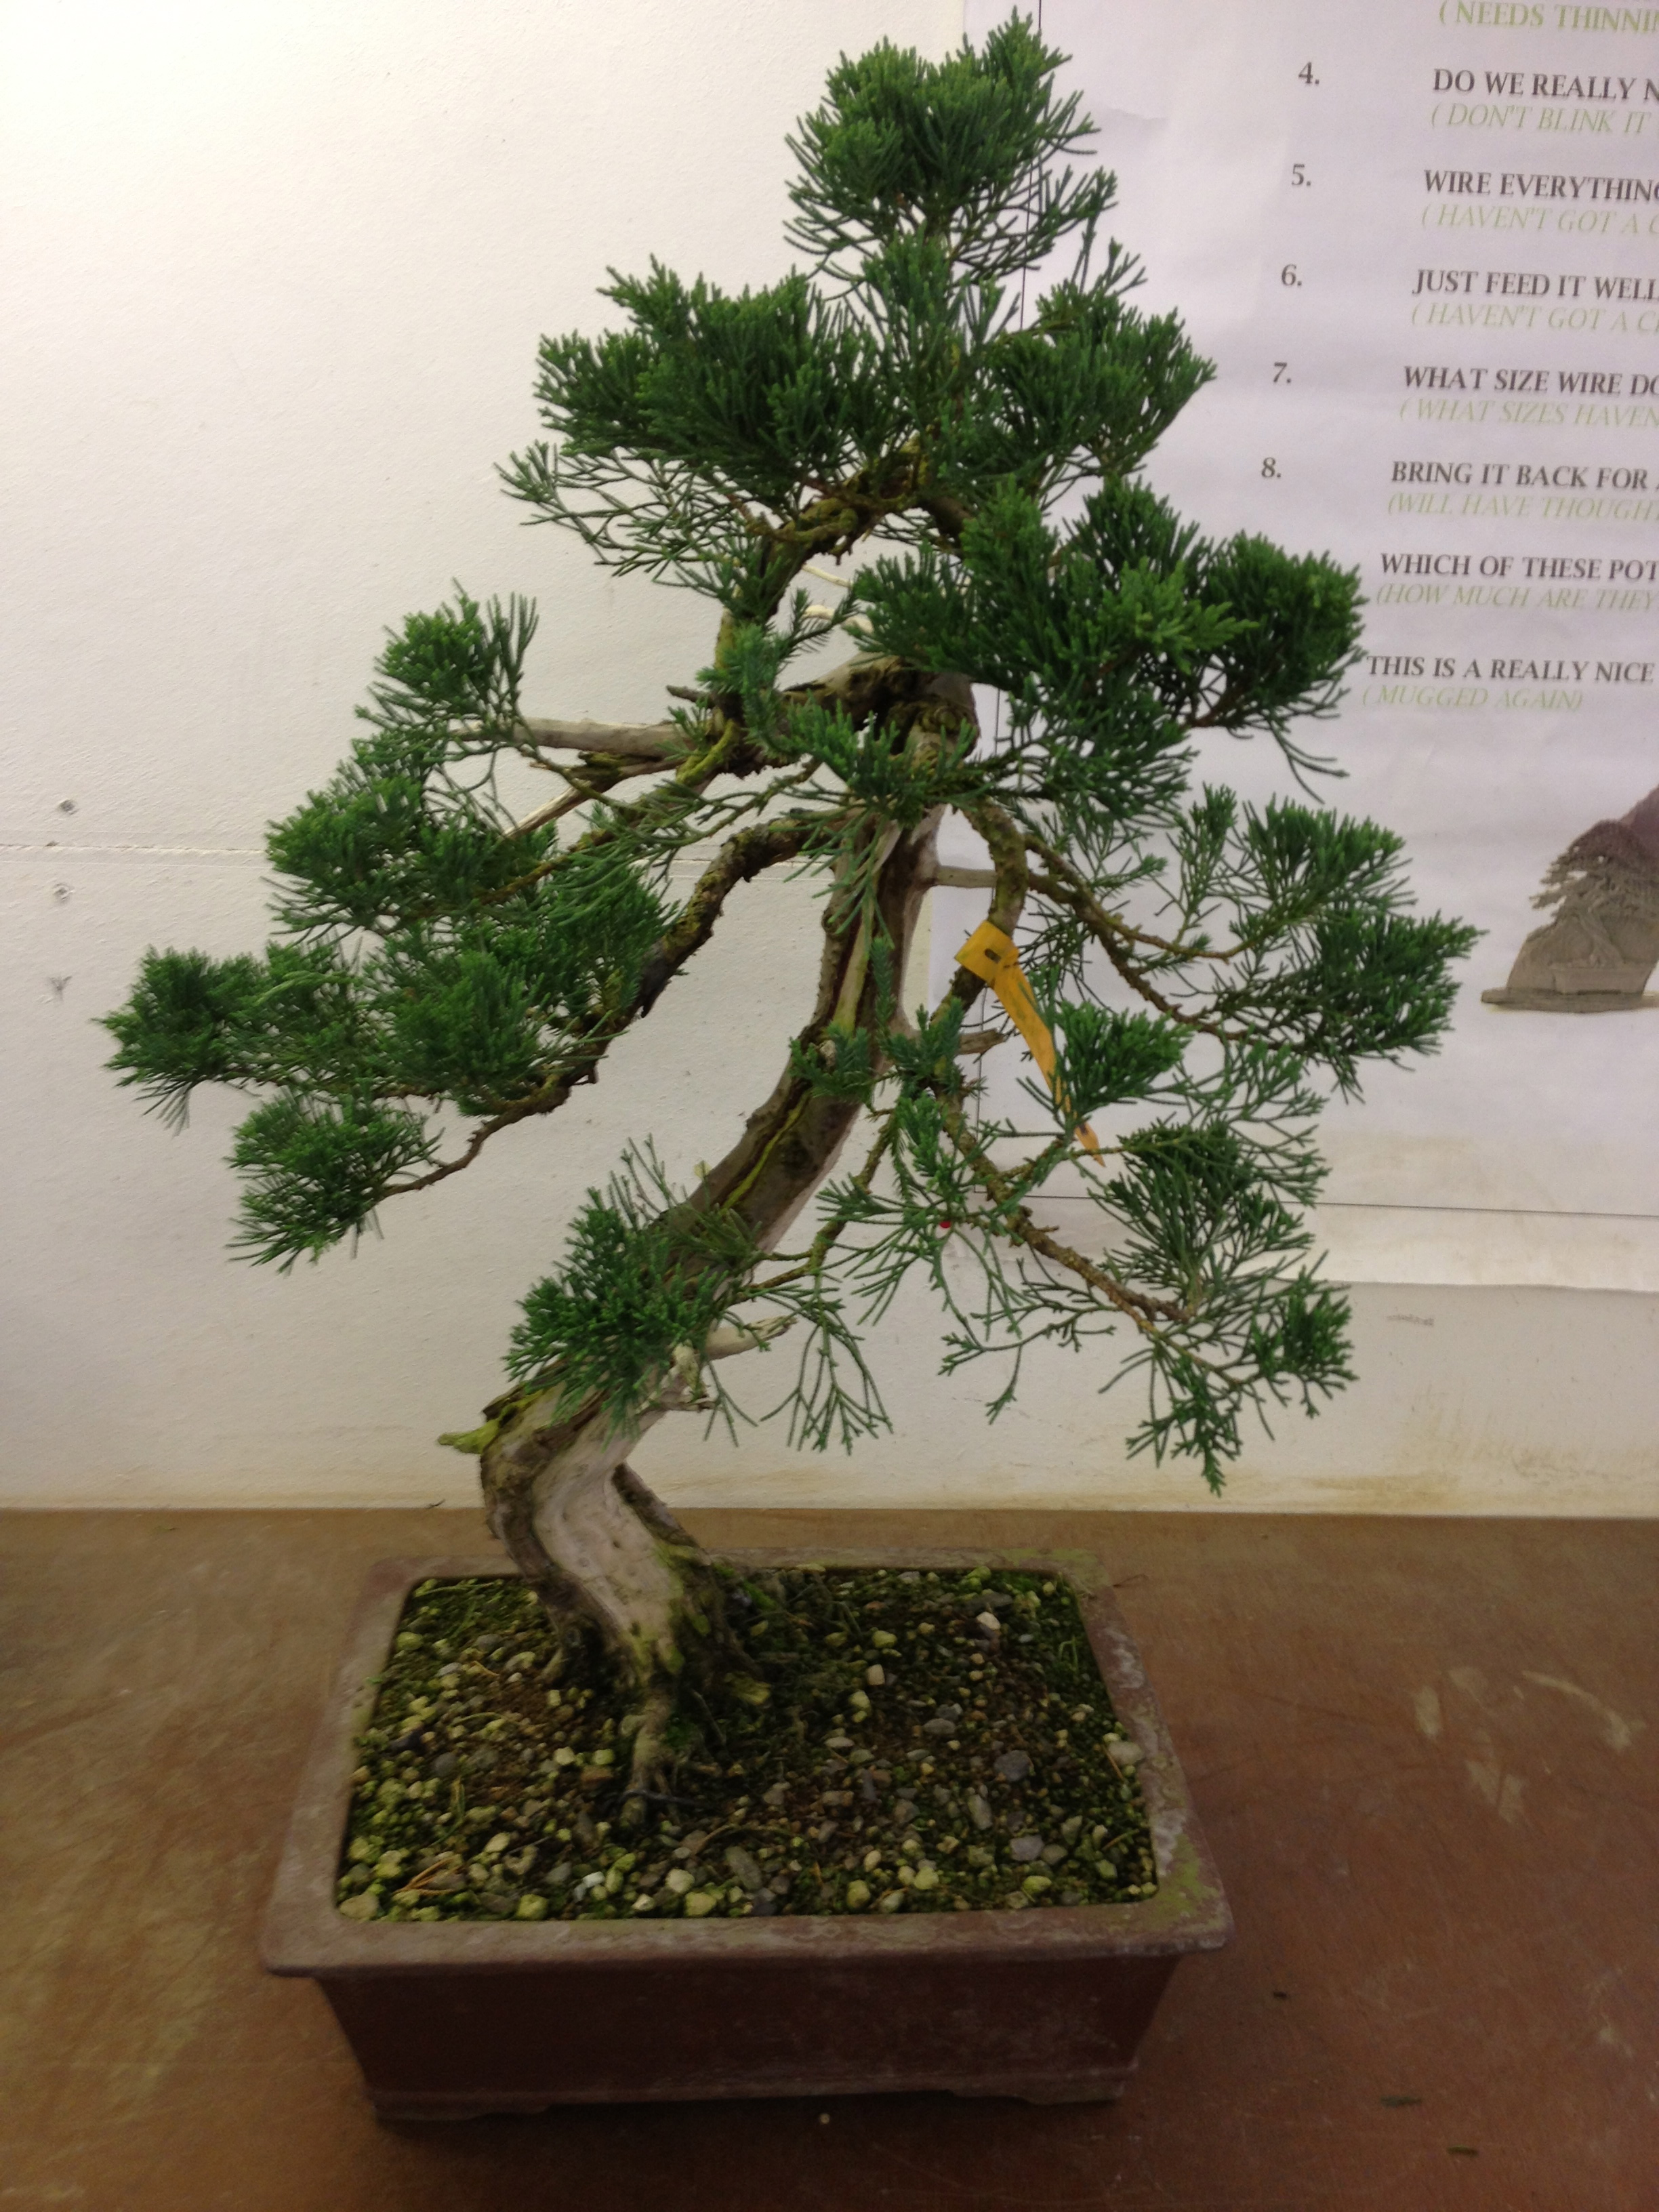 Topical Times Its That Styling Time Of Year John Hanby Bonsai Wiring Demo The Parsonii Juniper Had Been Originally Styled At One Our Days But After Removal Wire Gradually Lost Shape